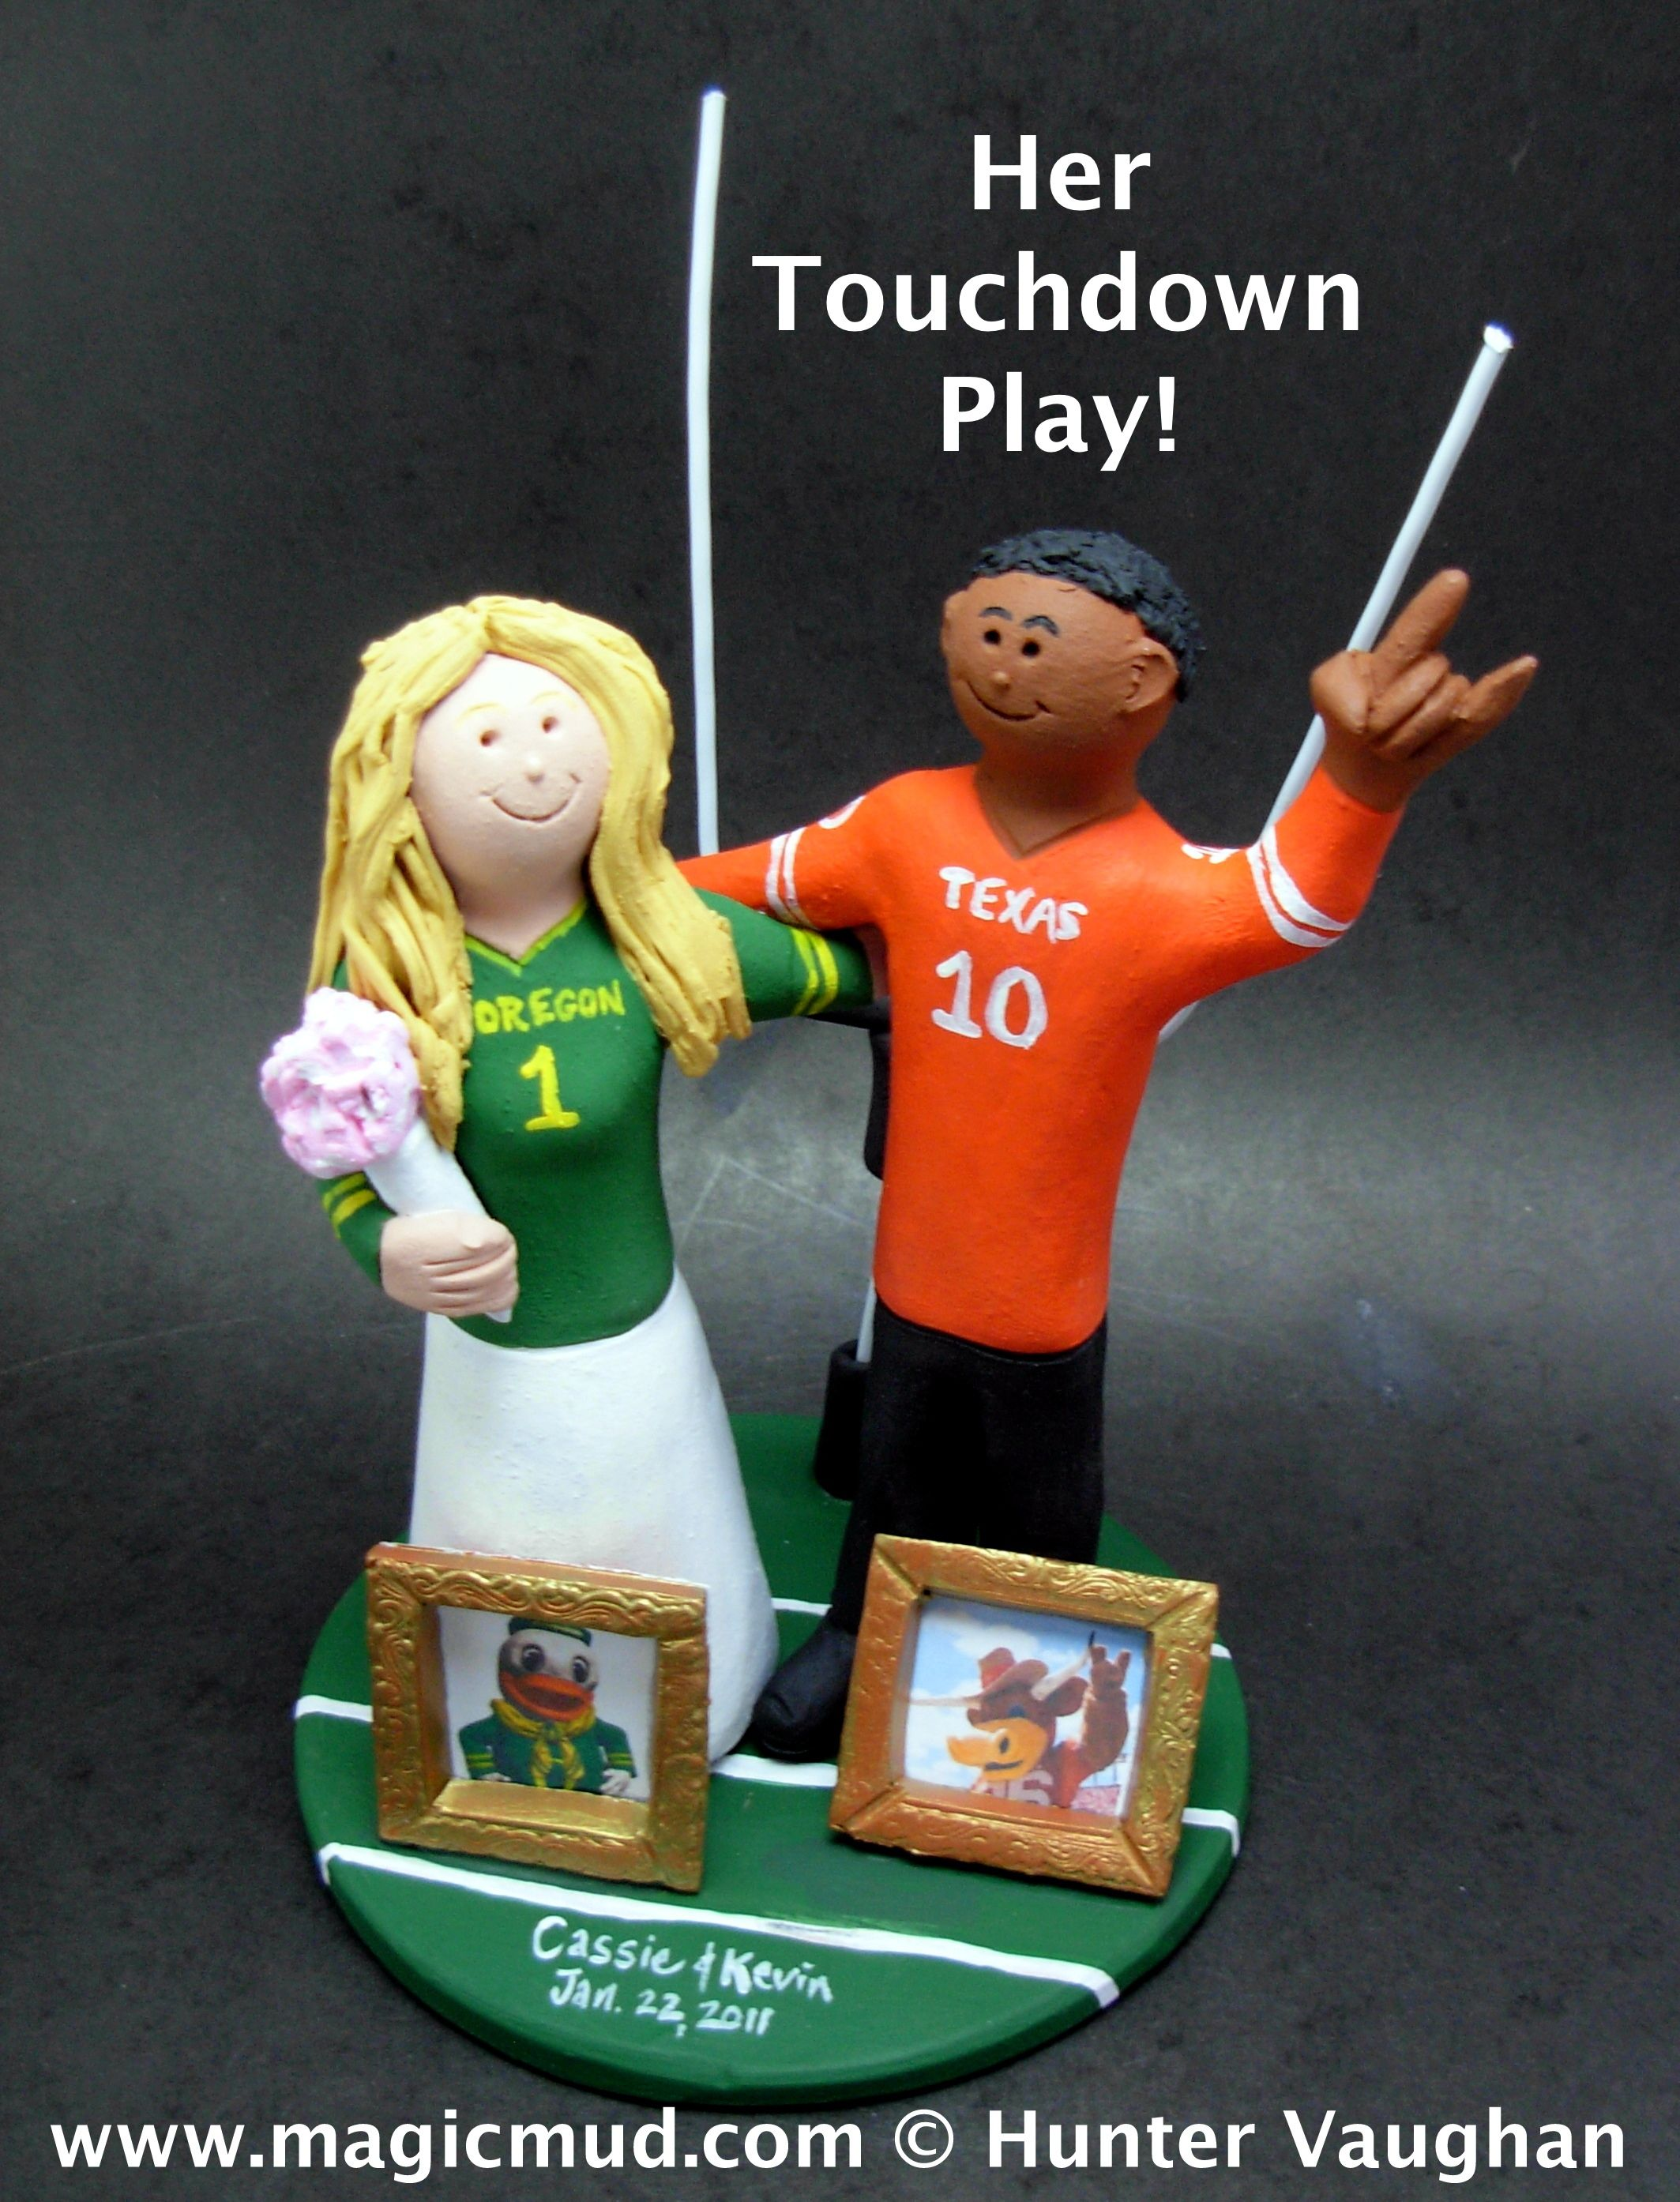 Texas-Longhorns-and-Oregon-Ducks-Football Wedding-Cake-Topper  www.magicmud.com 1 800 231 9814 magicmud magicmud... blog.magicmud.com  twitter.com ... ... 789863bee